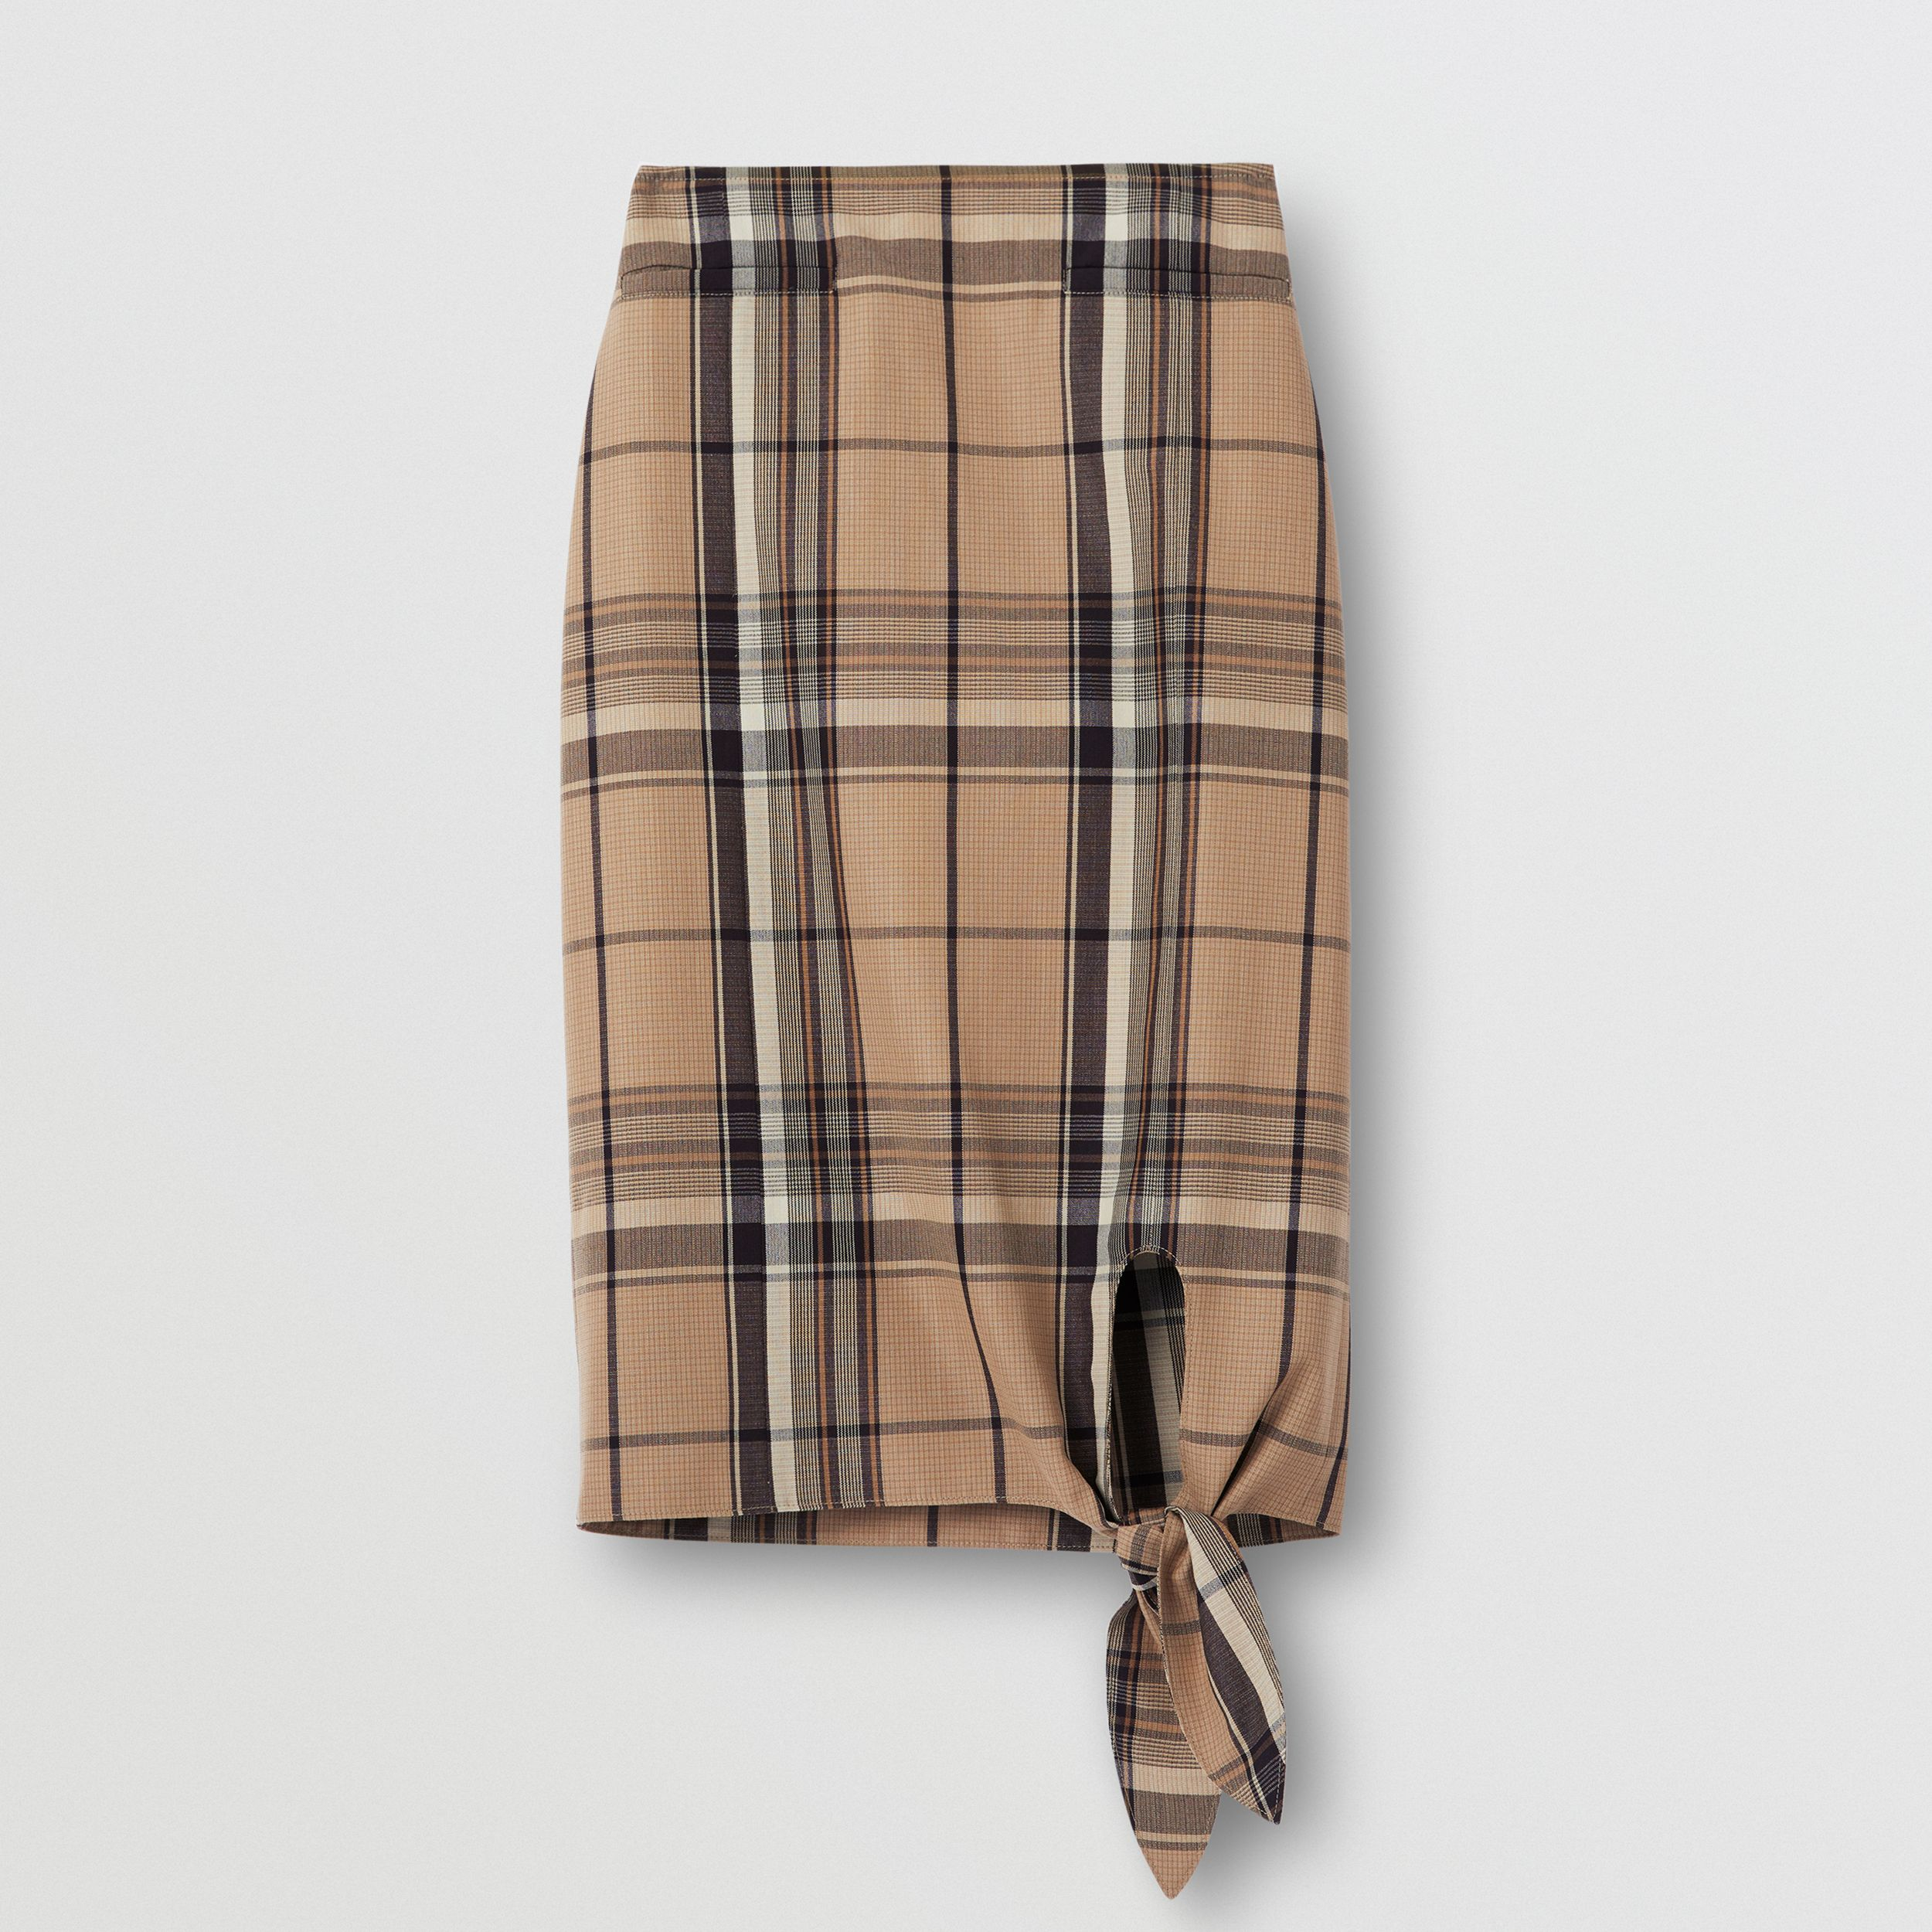 Knot Detail Check Wool Pencil Skirt in Driftwood - Women | Burberry - 4